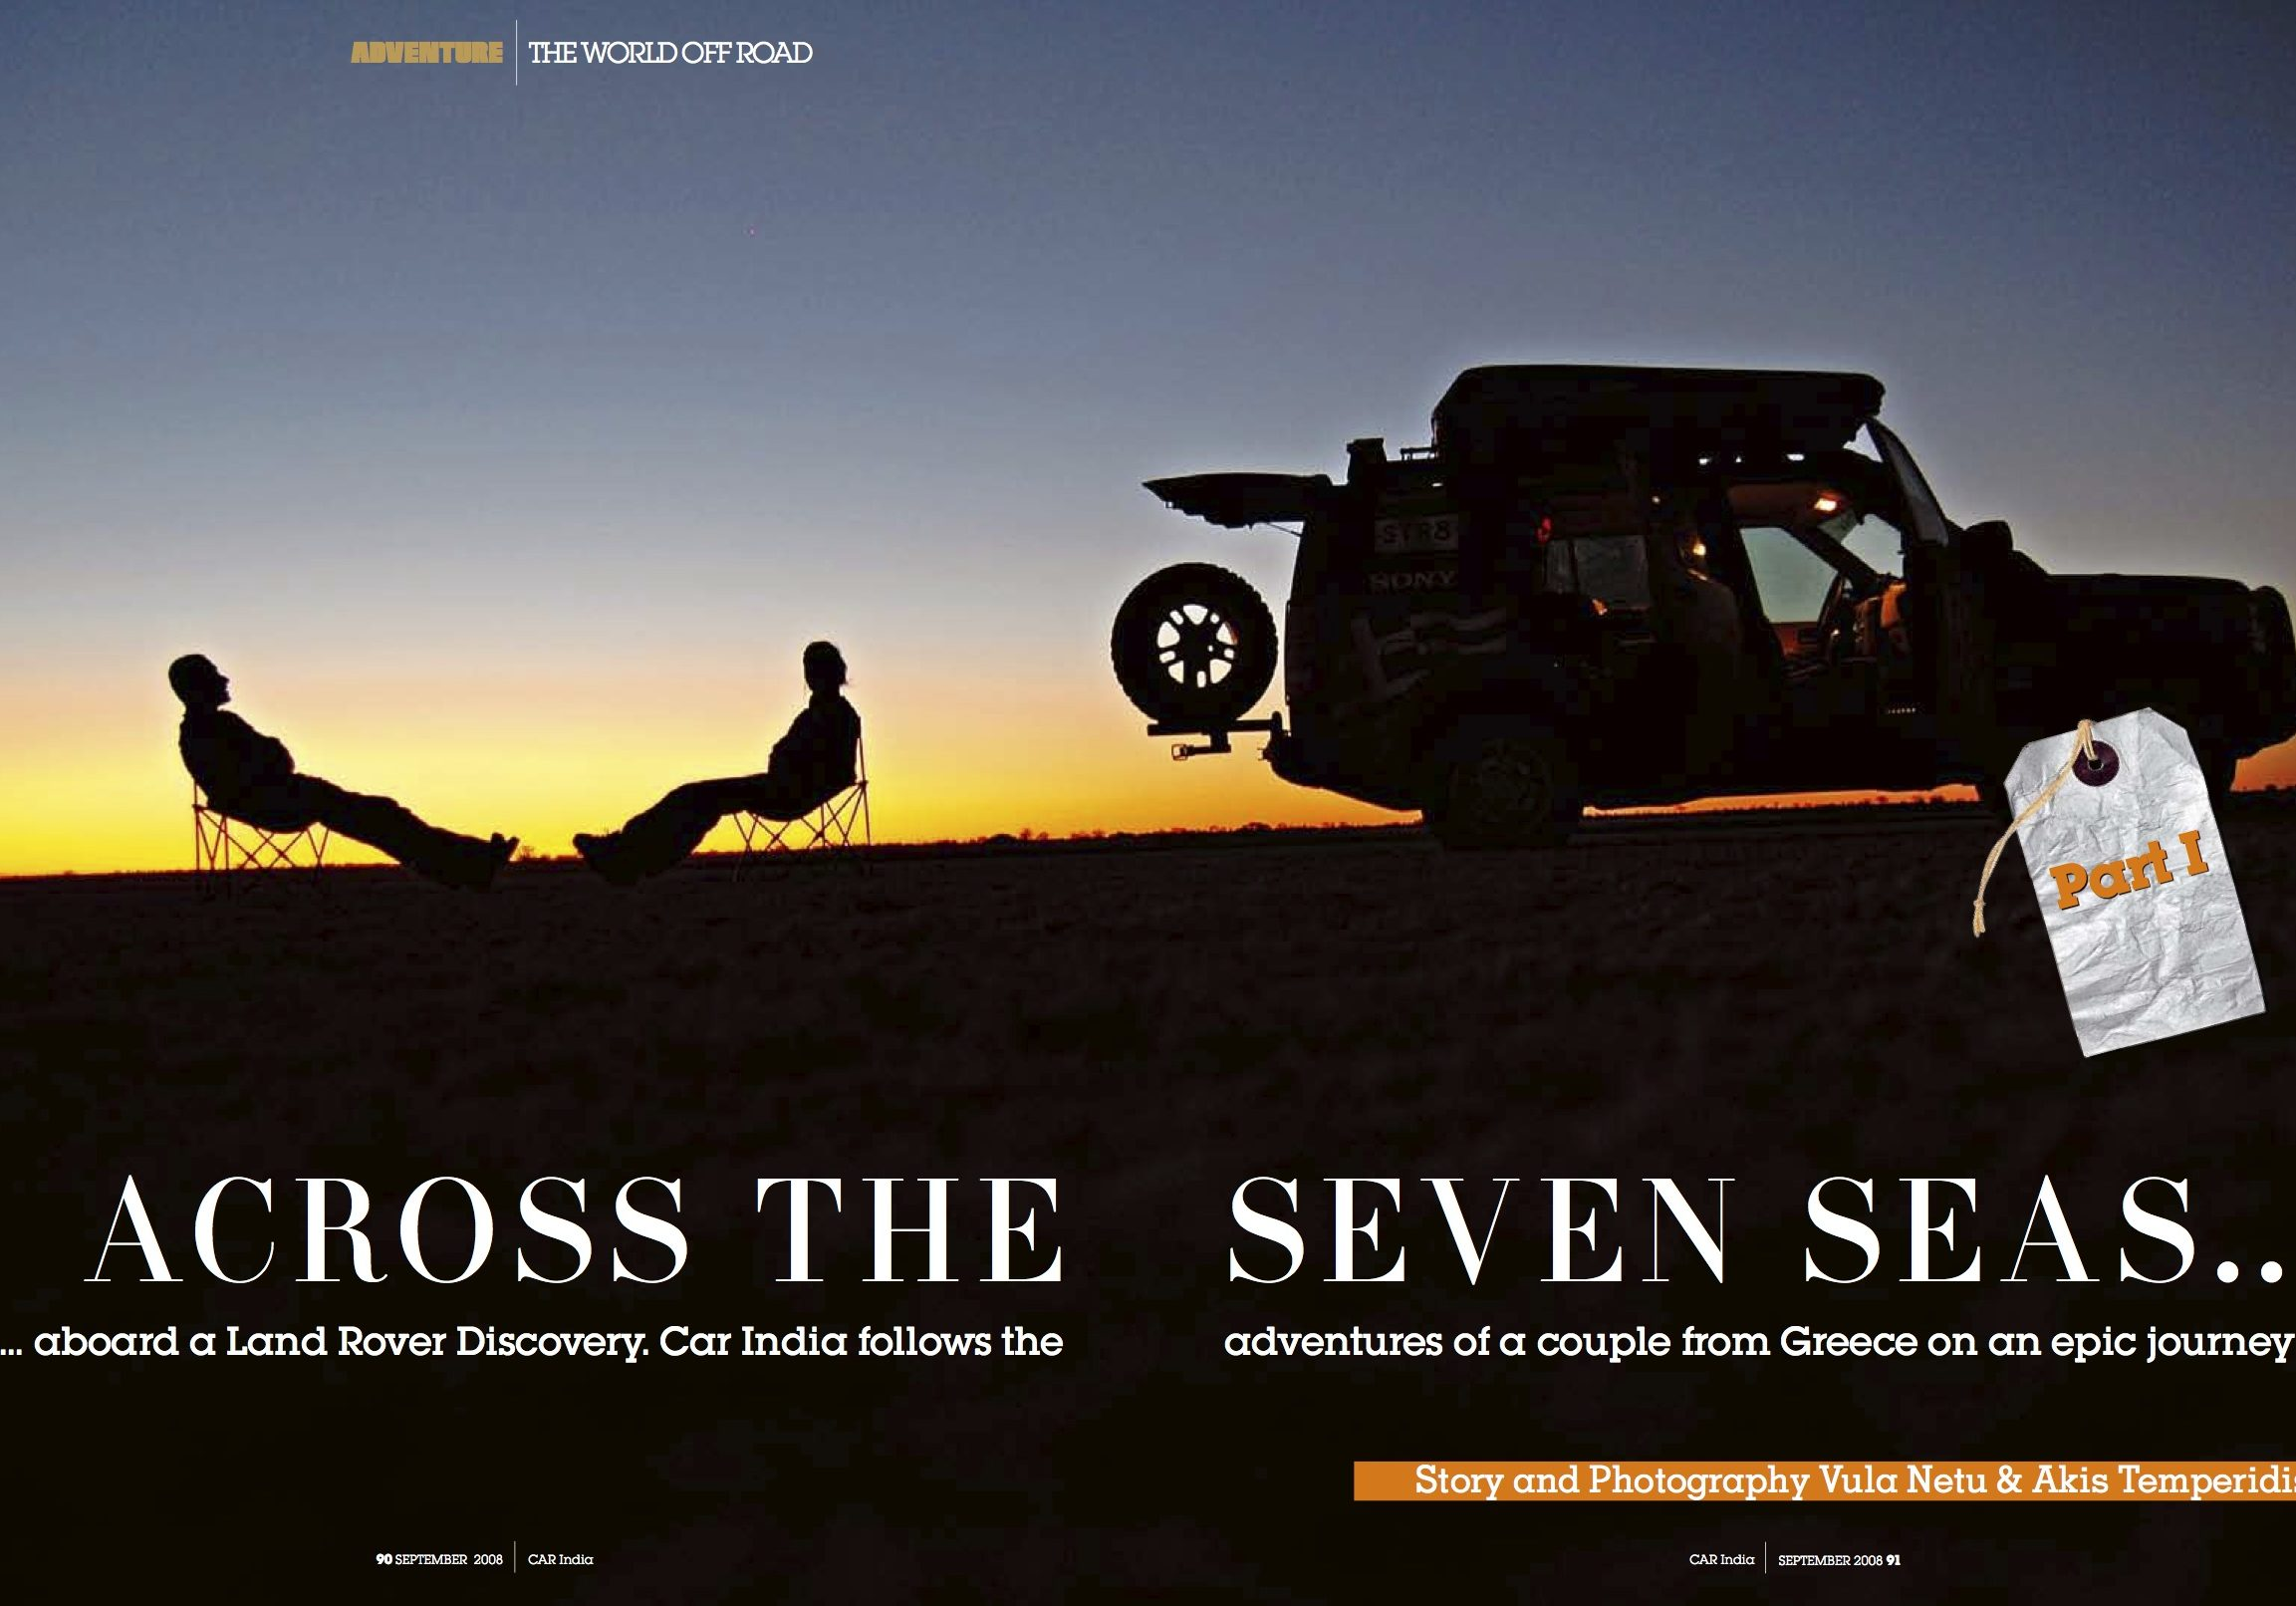 Car of India magazine, September 2008